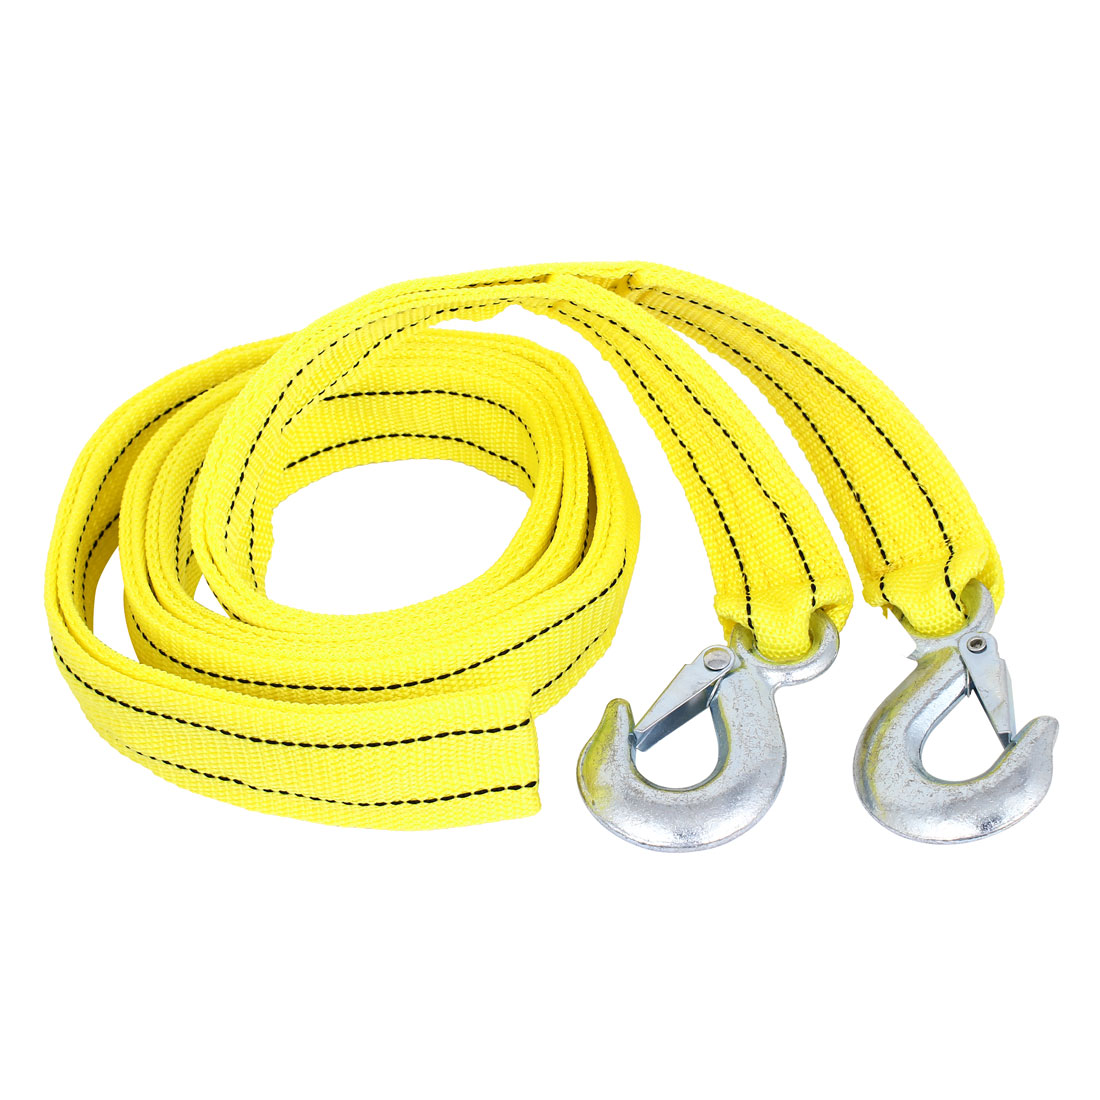 5 Tons 4M 13ft Long Nylon Car Trailer Towing Webbing Strap Yellow by Unique Bargains